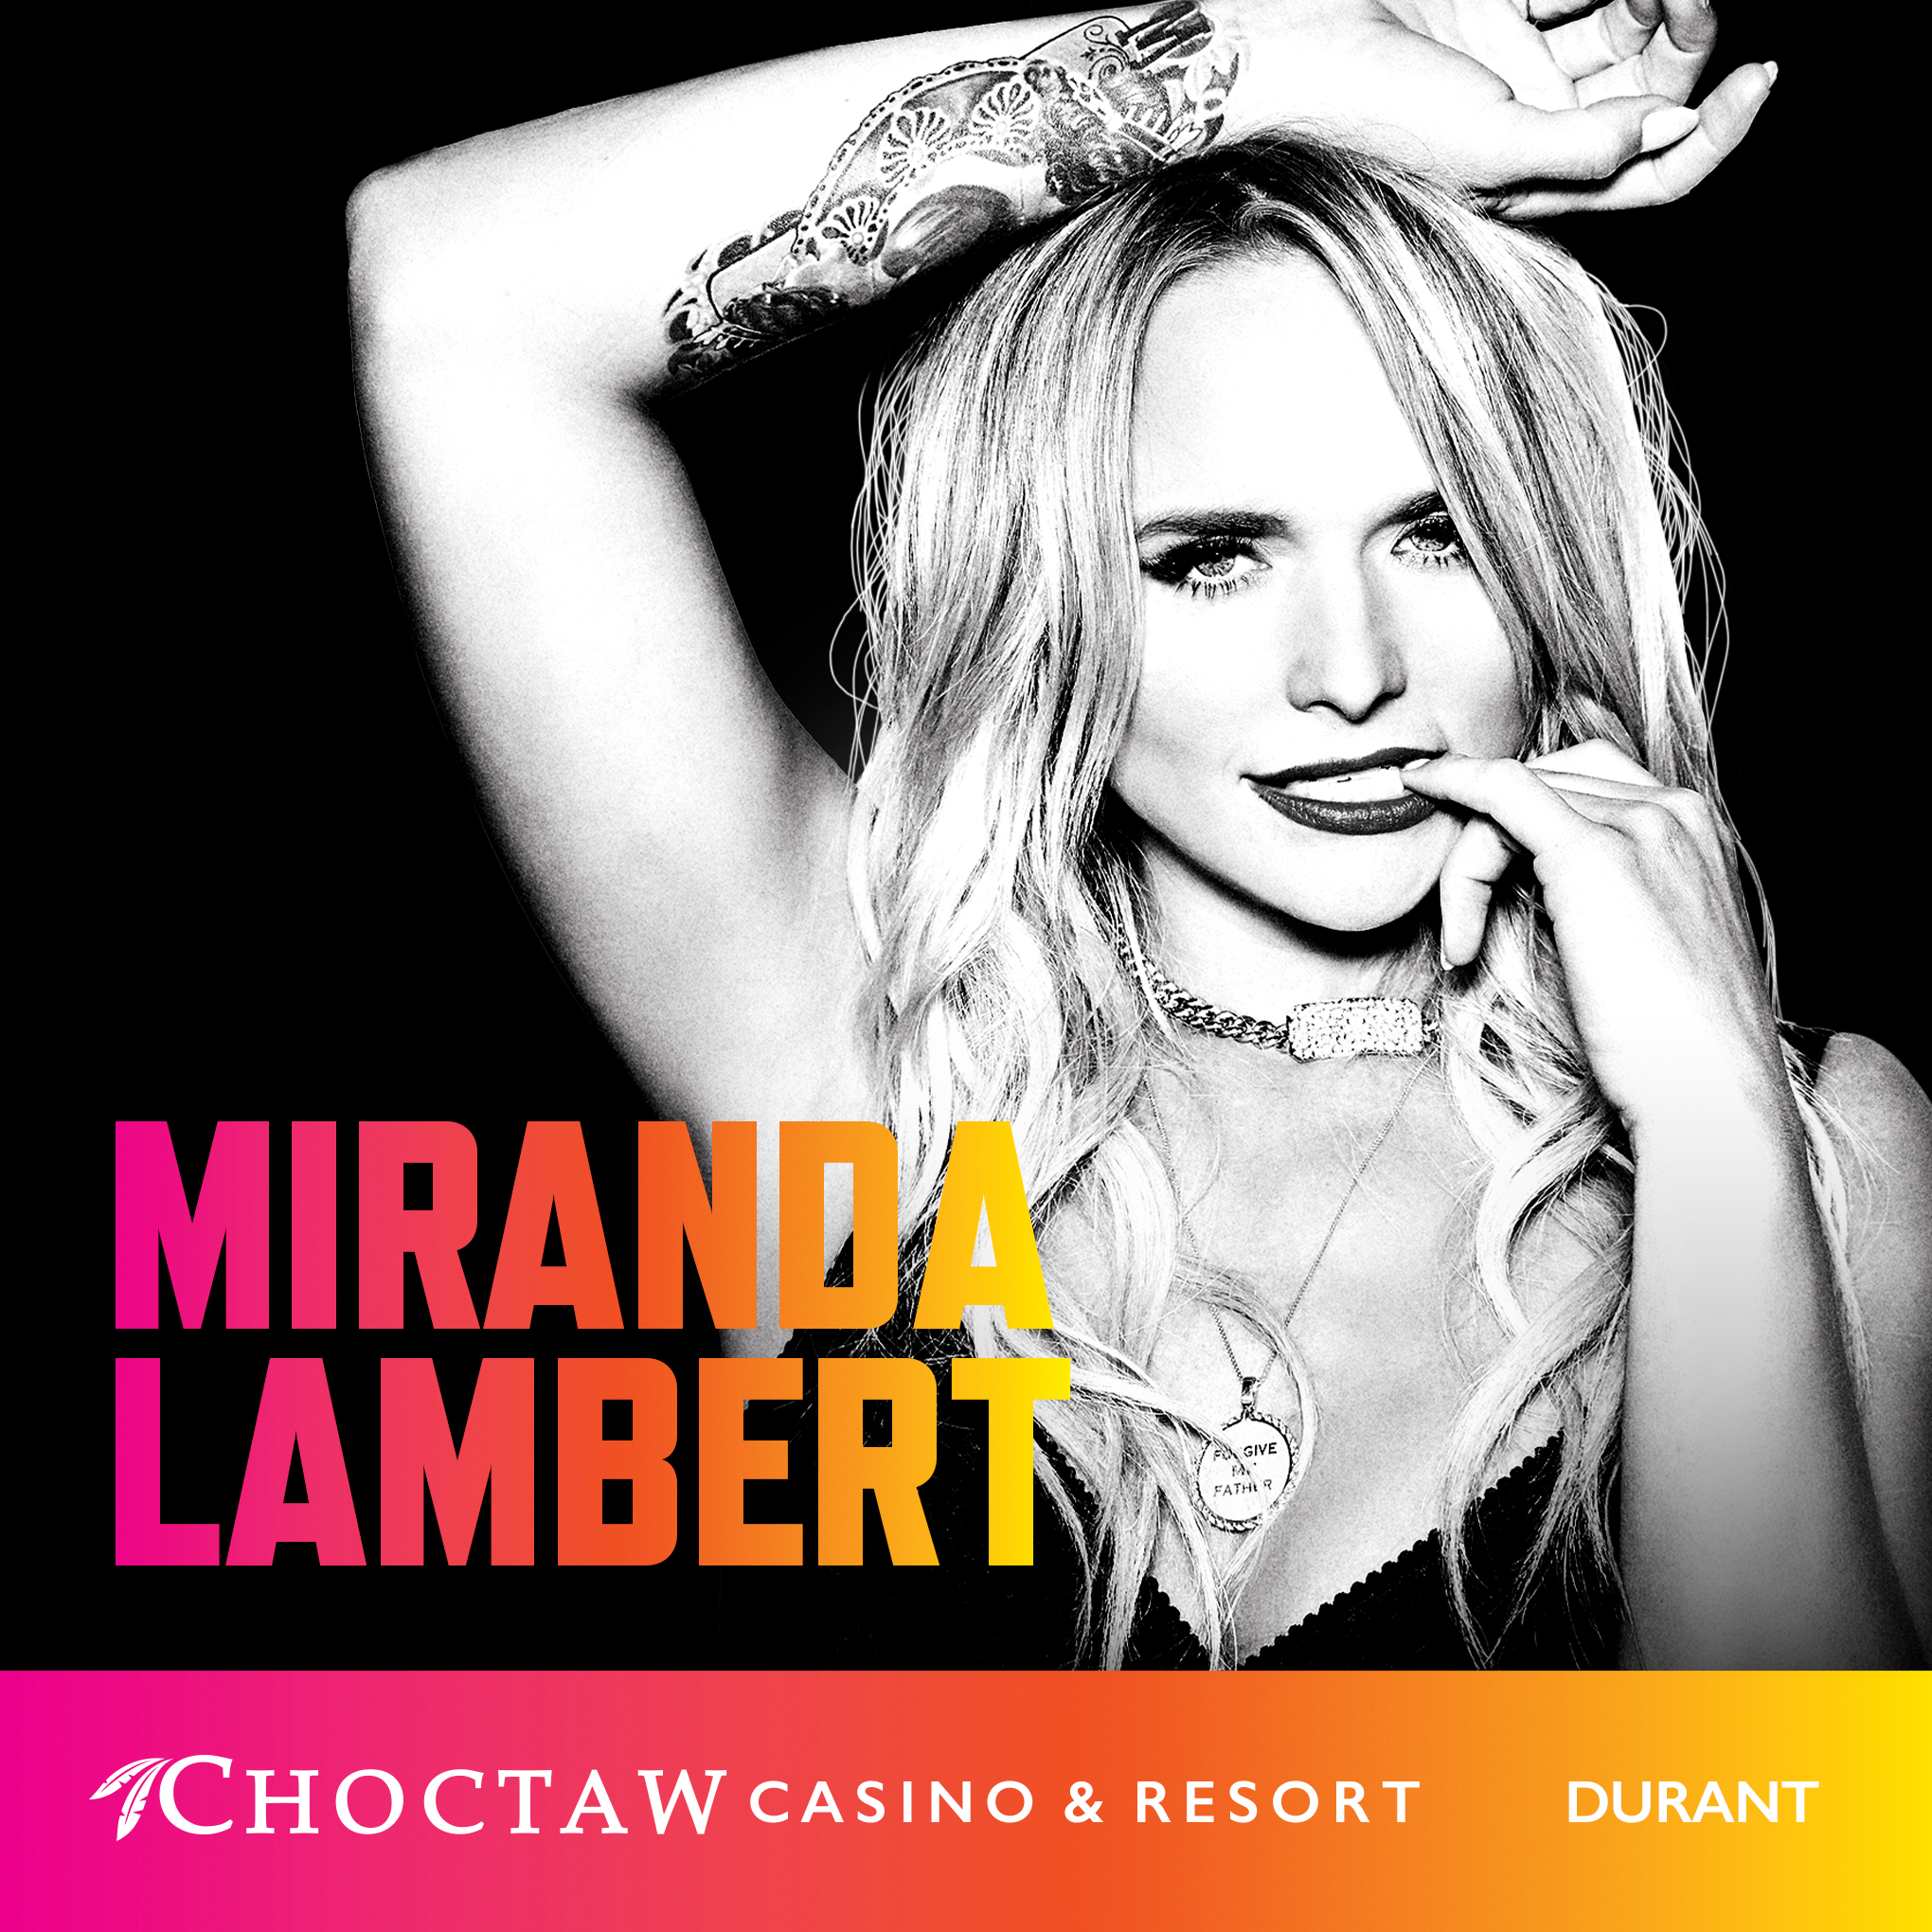 See Miranda, Stay at Choctaw & Get a New Outfit!